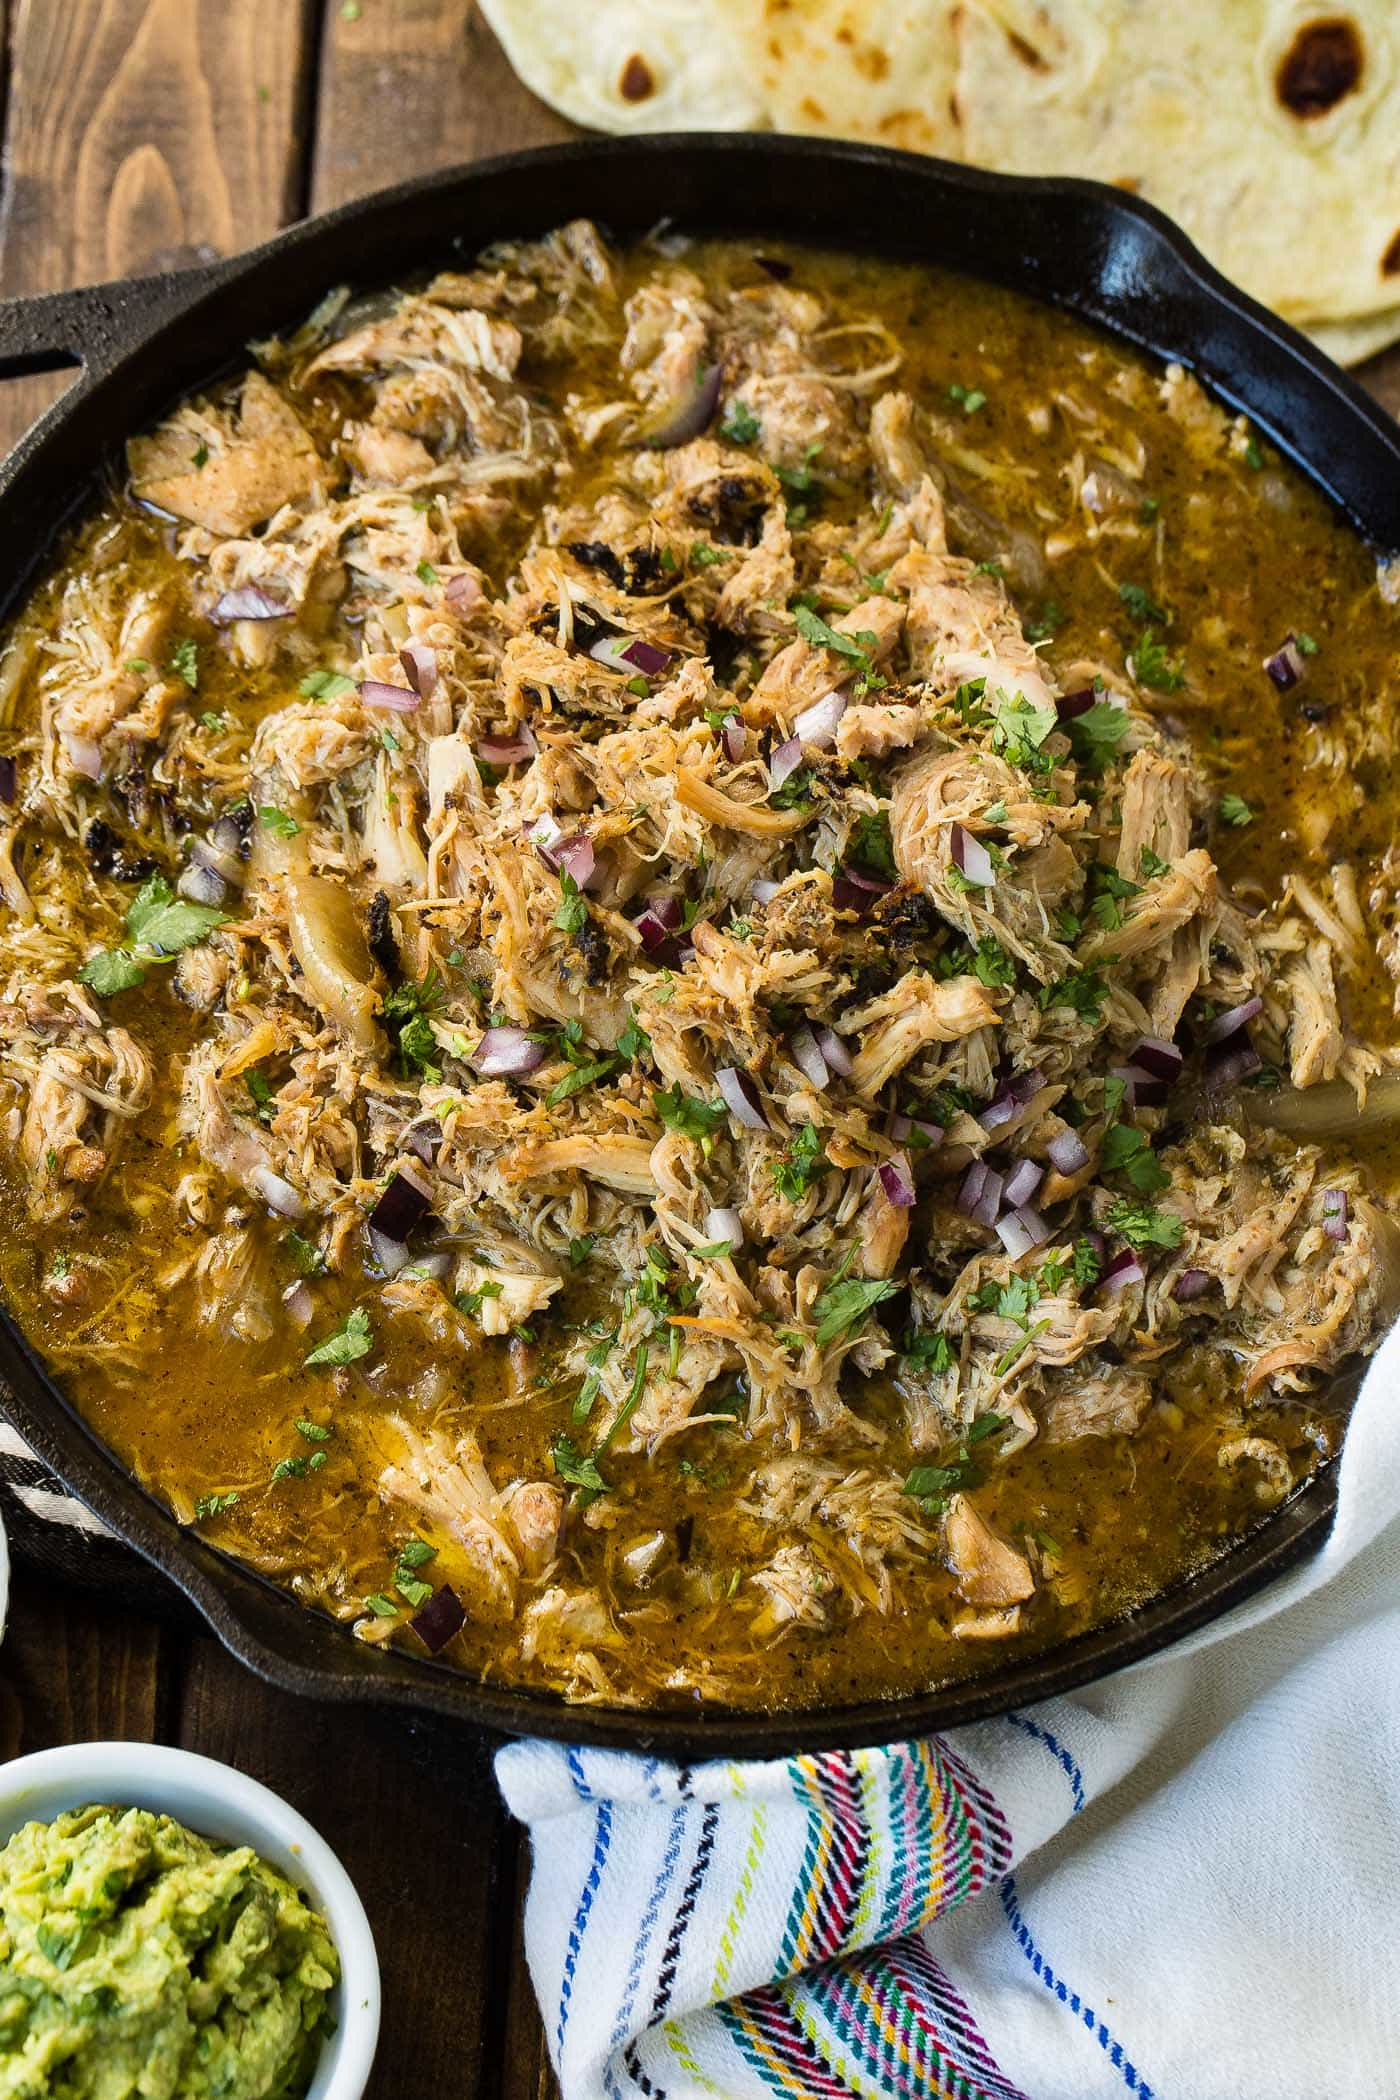 A photo of juicy crispy chicken carnitas in a cast iron skillet garnished with chopped cilantro and diced red onion.